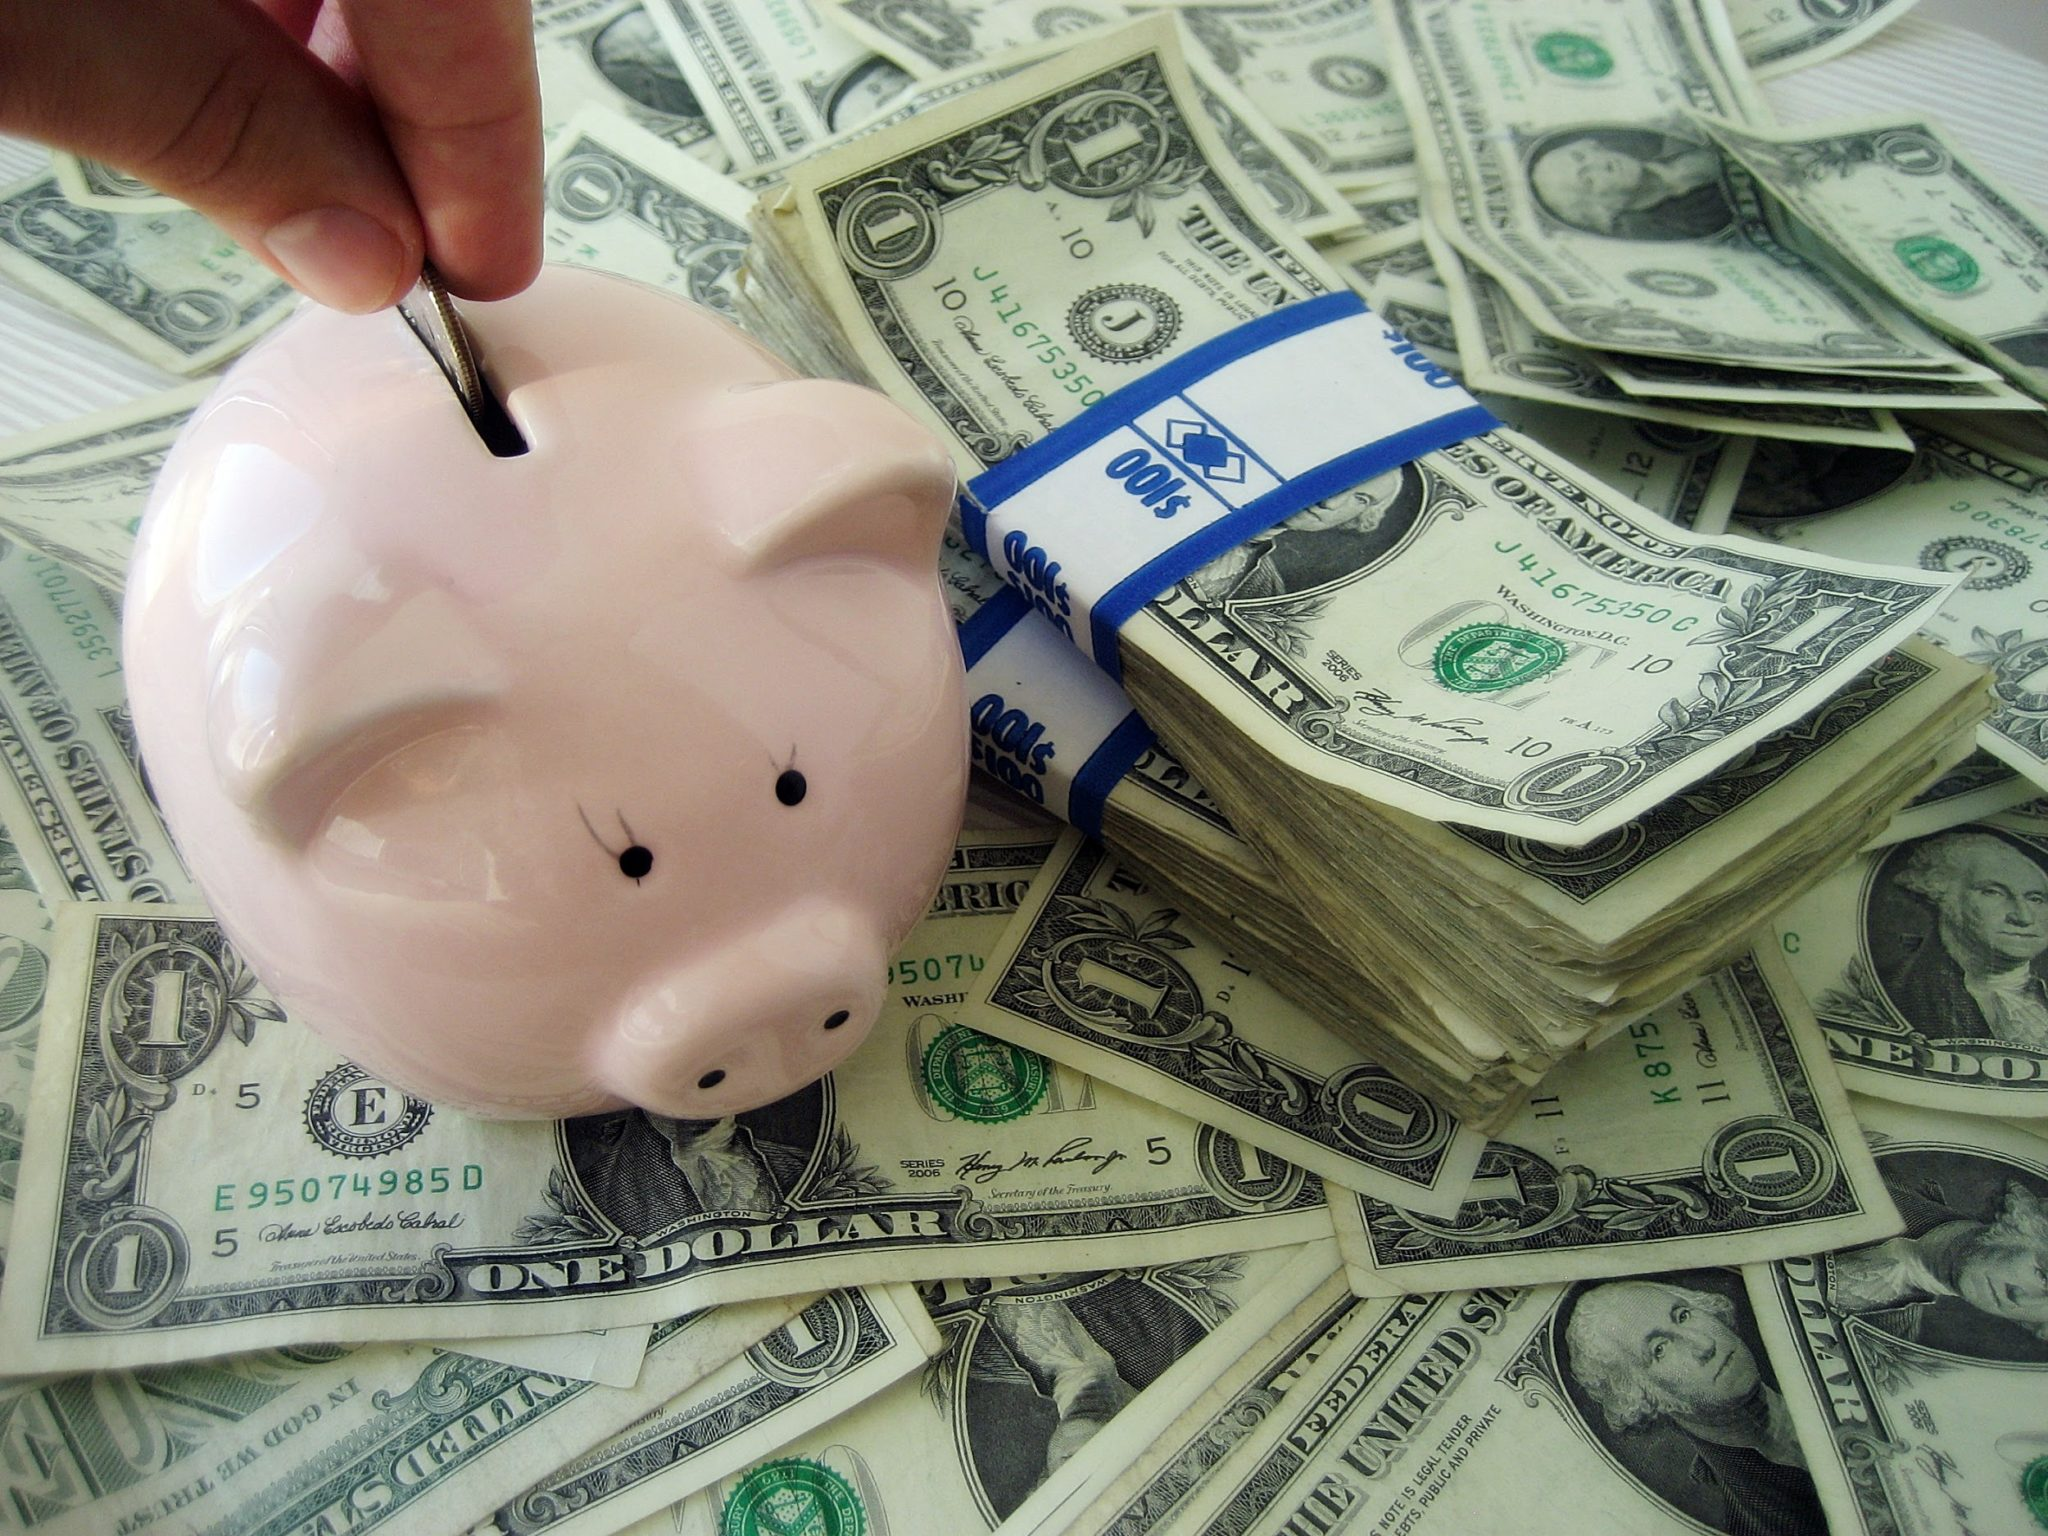 Hacks to Help the Family Fund Stretch Further